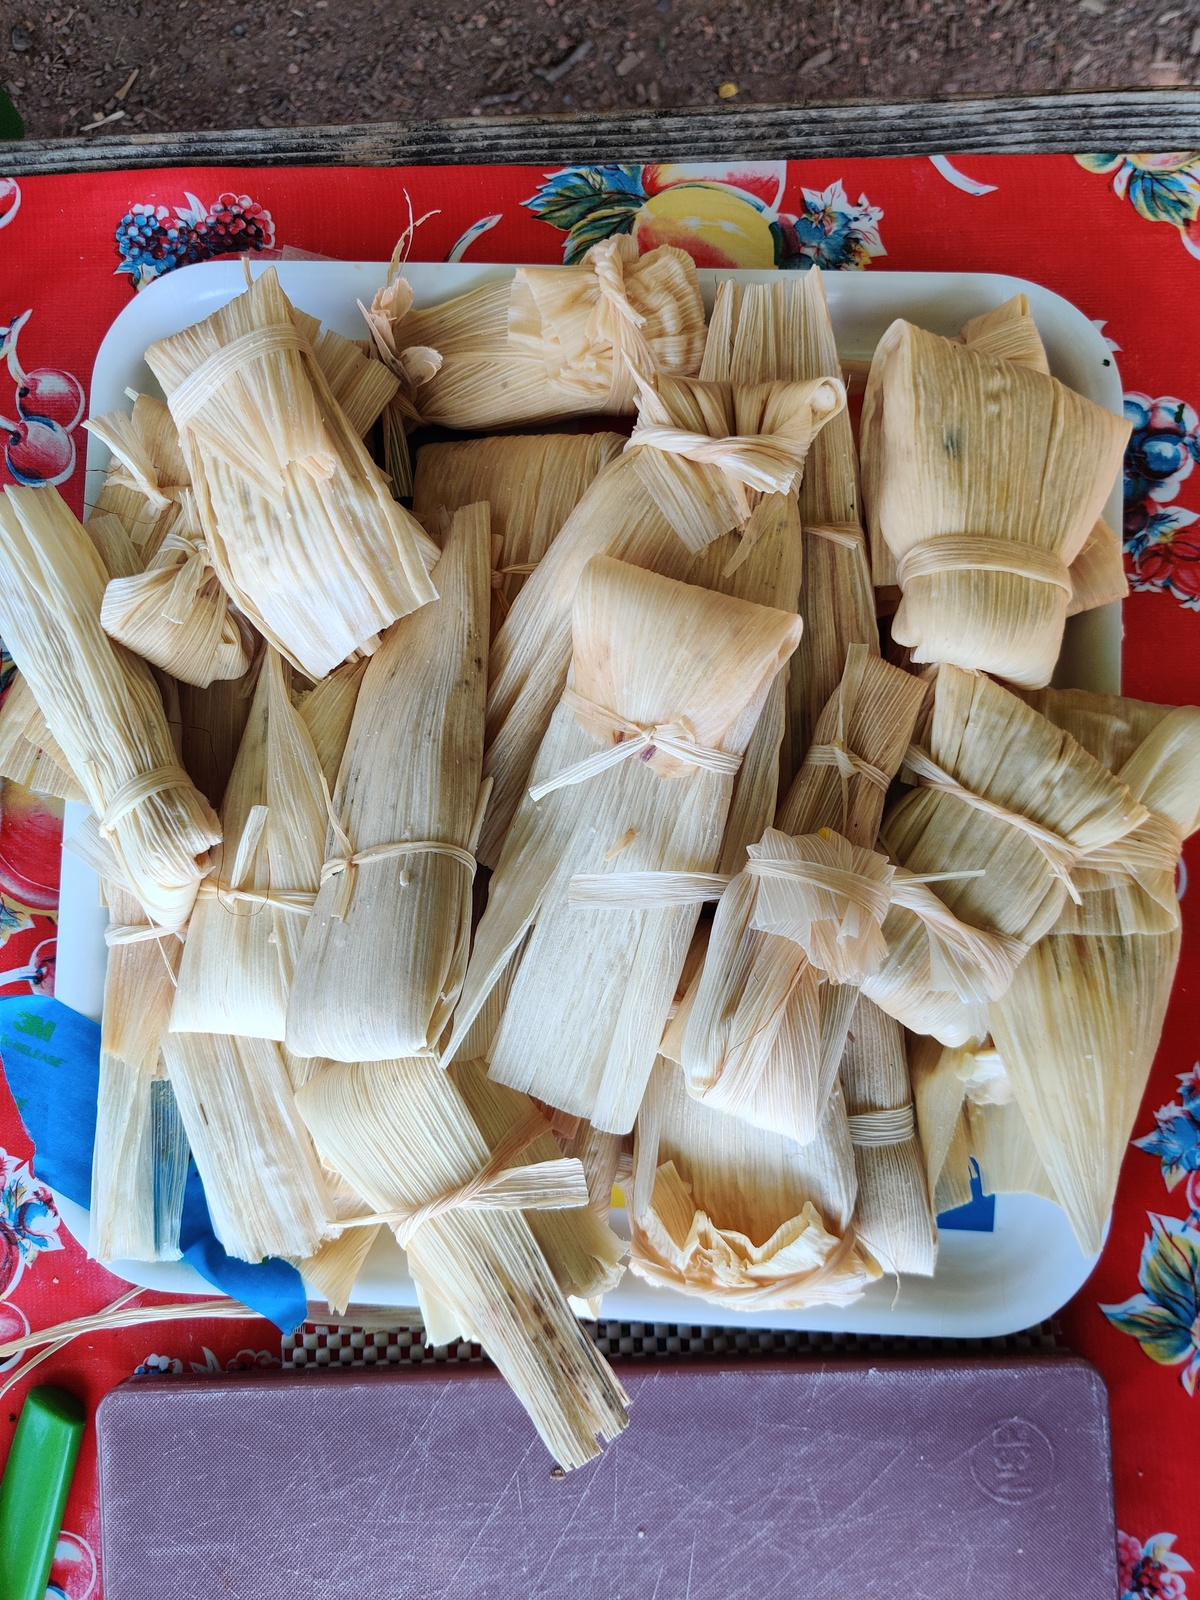 tamales on a plate.